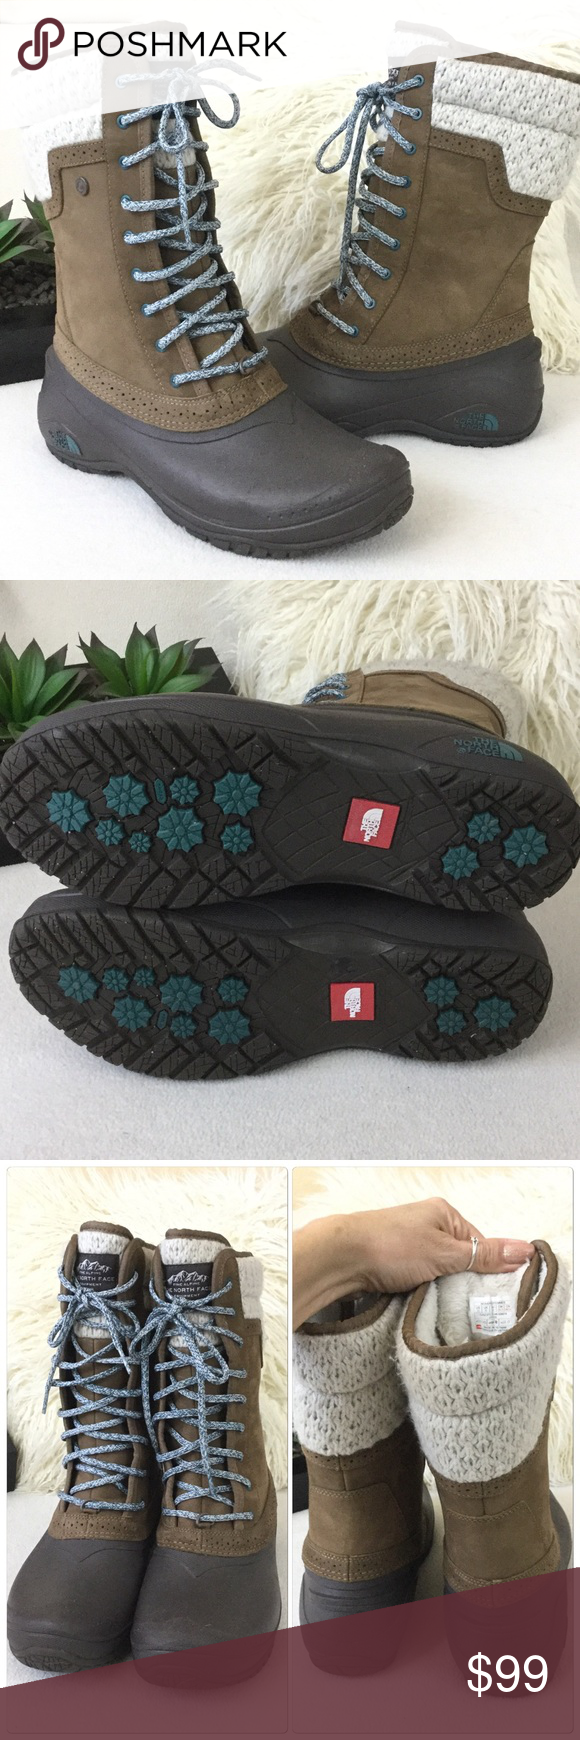 """The North Face Like New winter boots The North Face Like New winter boots. Wonderful condition worn once. Keep you warm and dry through the elements   Measures 11.5"""" tall and insoles Aprox 10.5"""" long. Women's size 11. 516-570 The North Face Shoes Winter & Rain Boots"""